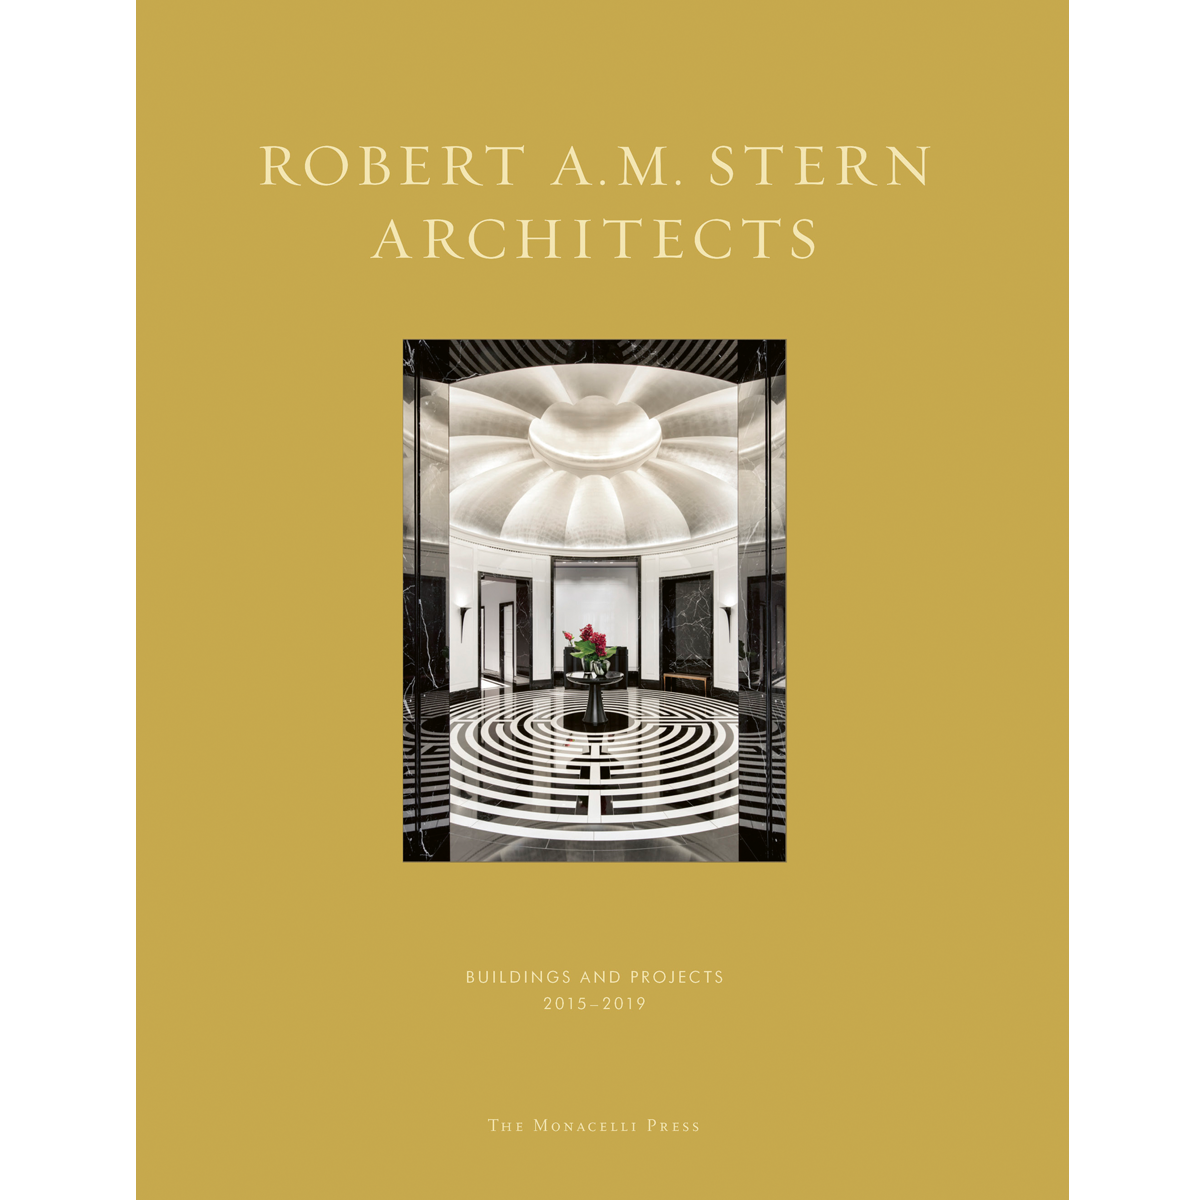 Robert A.M. Stern: Buildings and Projects: 2015-2019